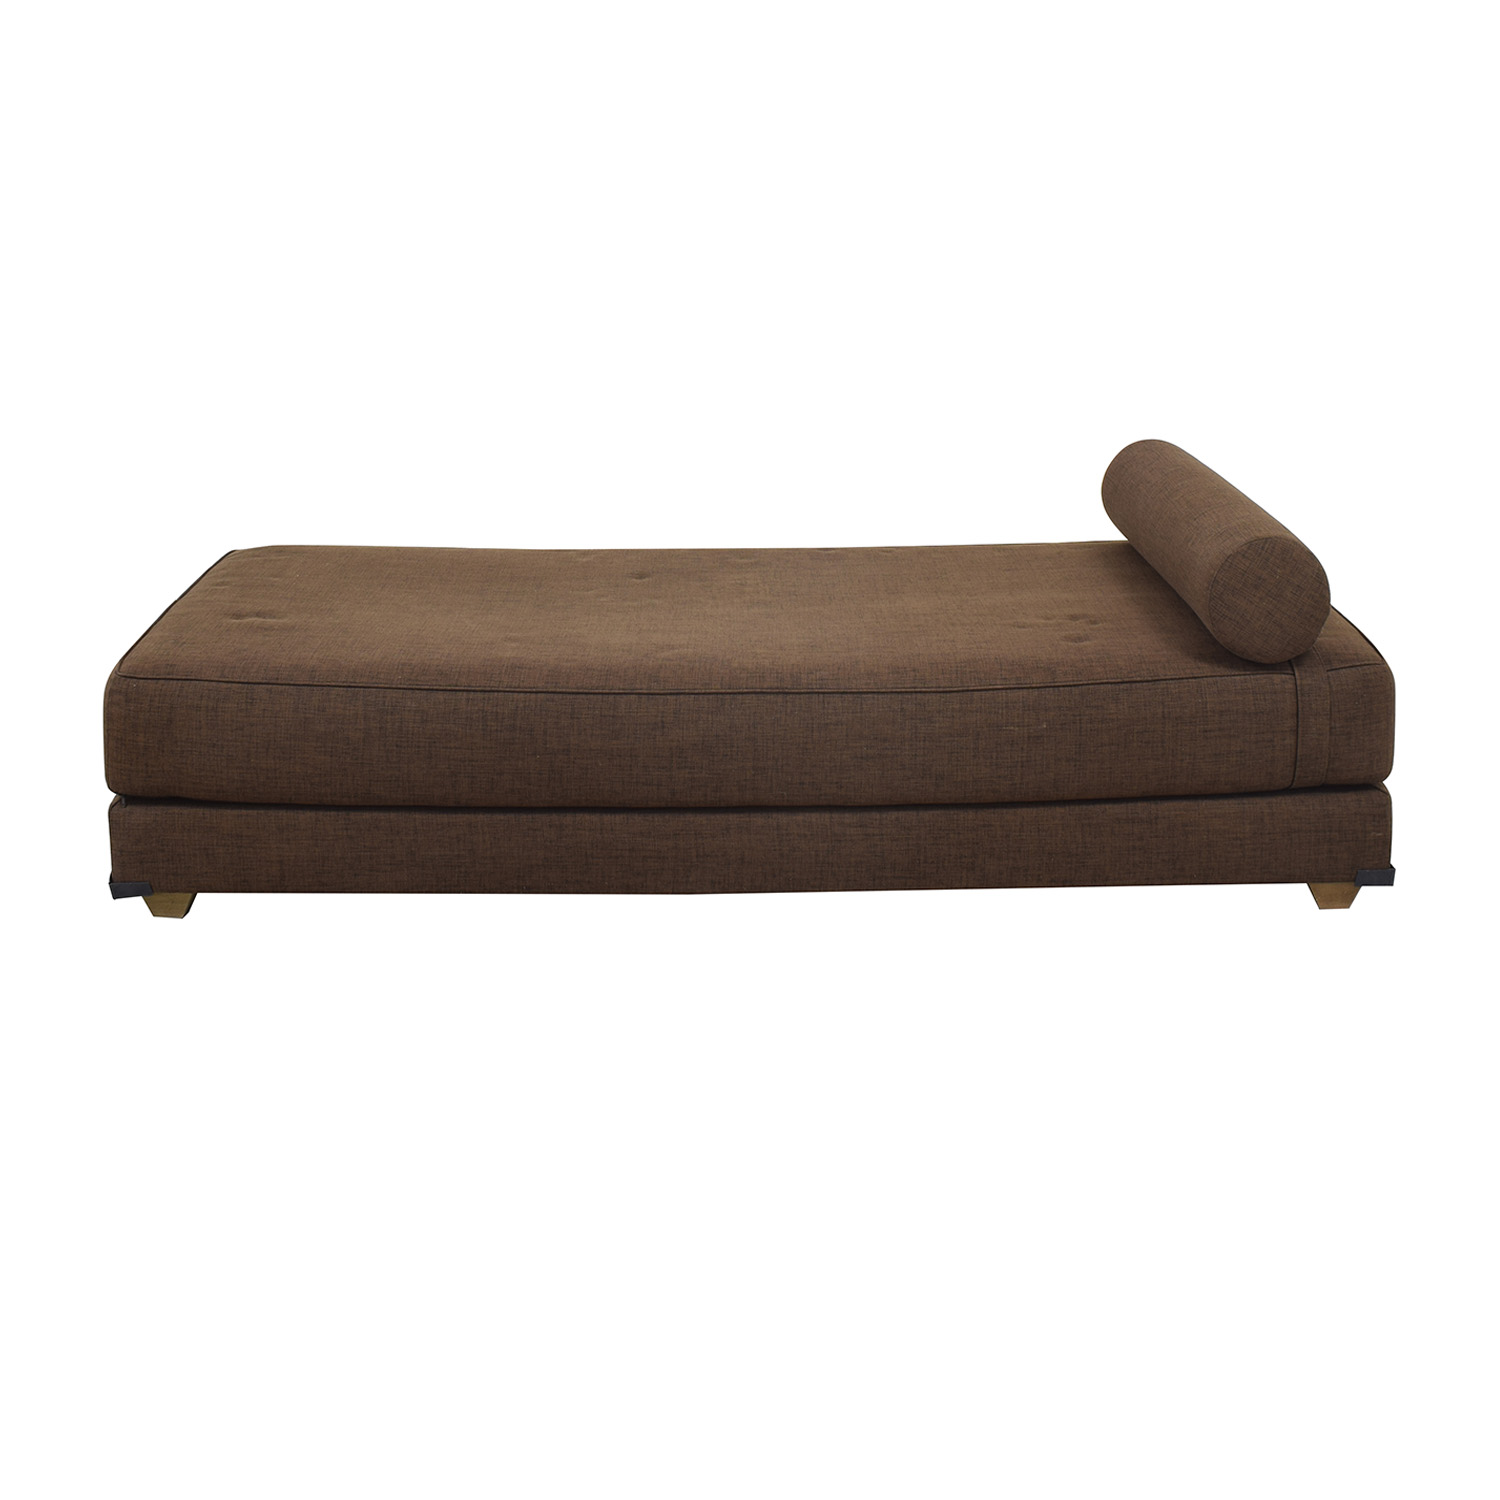 CB2 CB2 Lubi Daybed brown